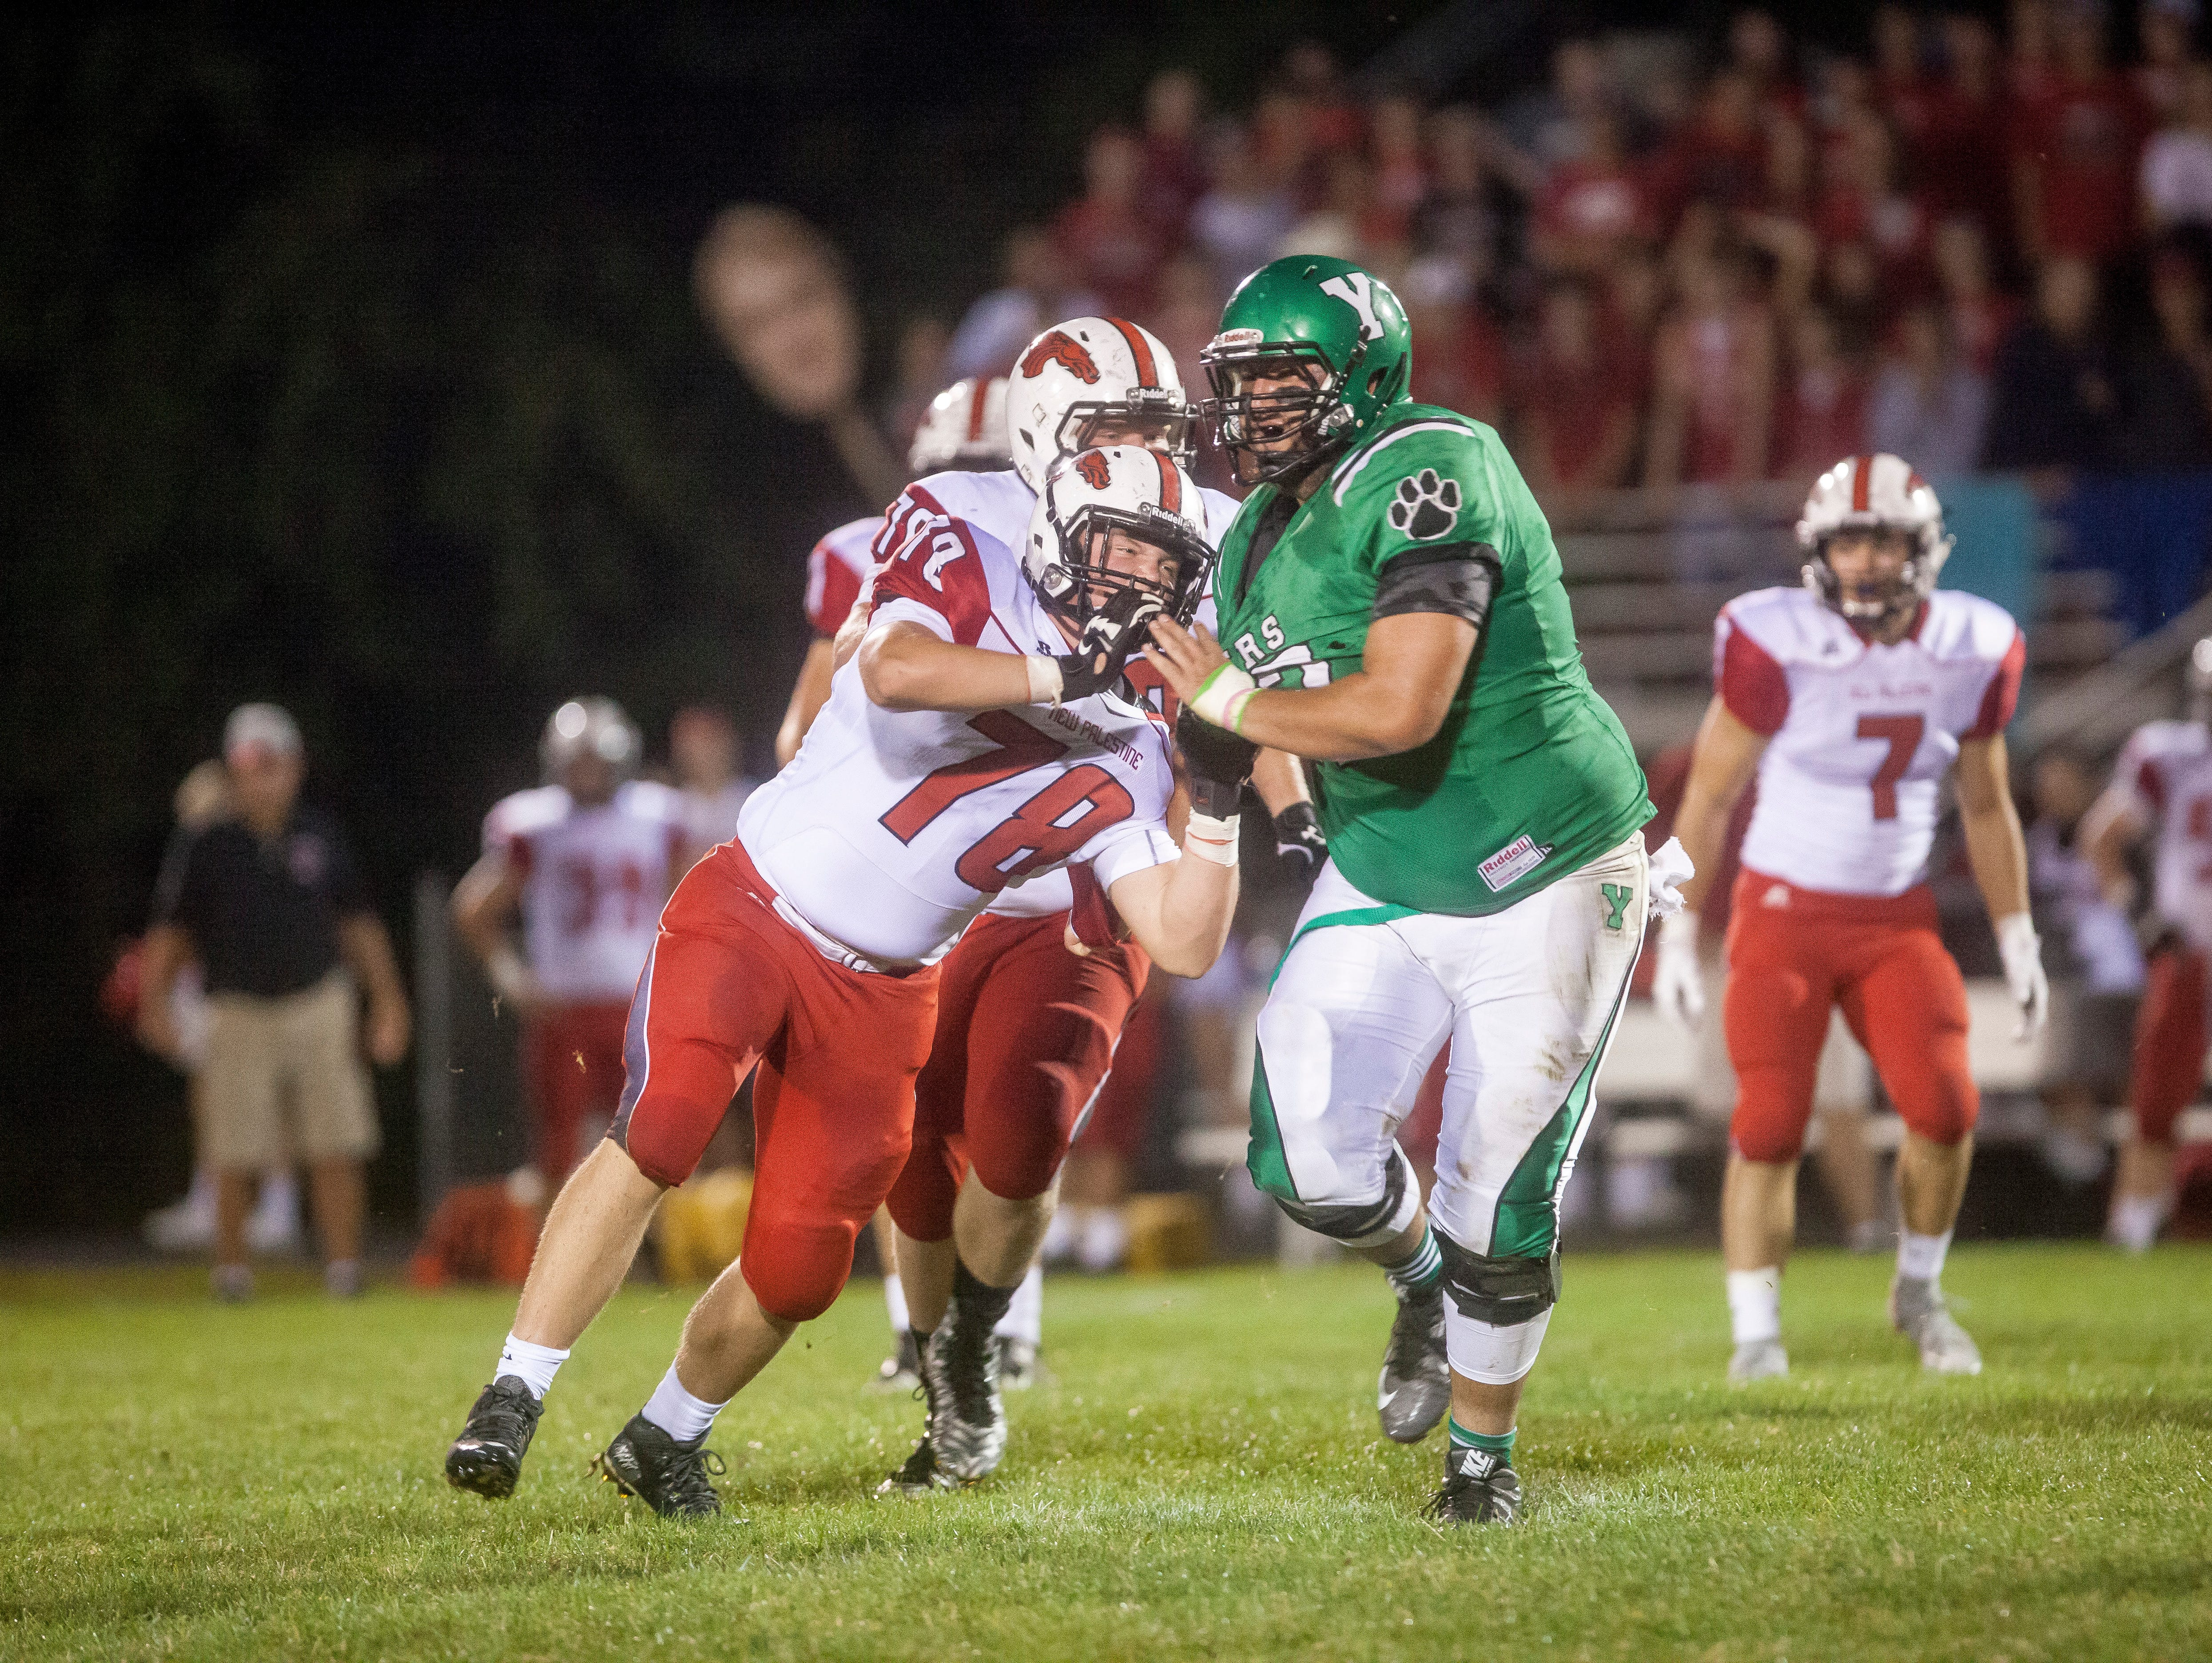 Yorktown lost to New Palestine Friday night in a weather delayed game with a final score of 6-37. Anthony Todd